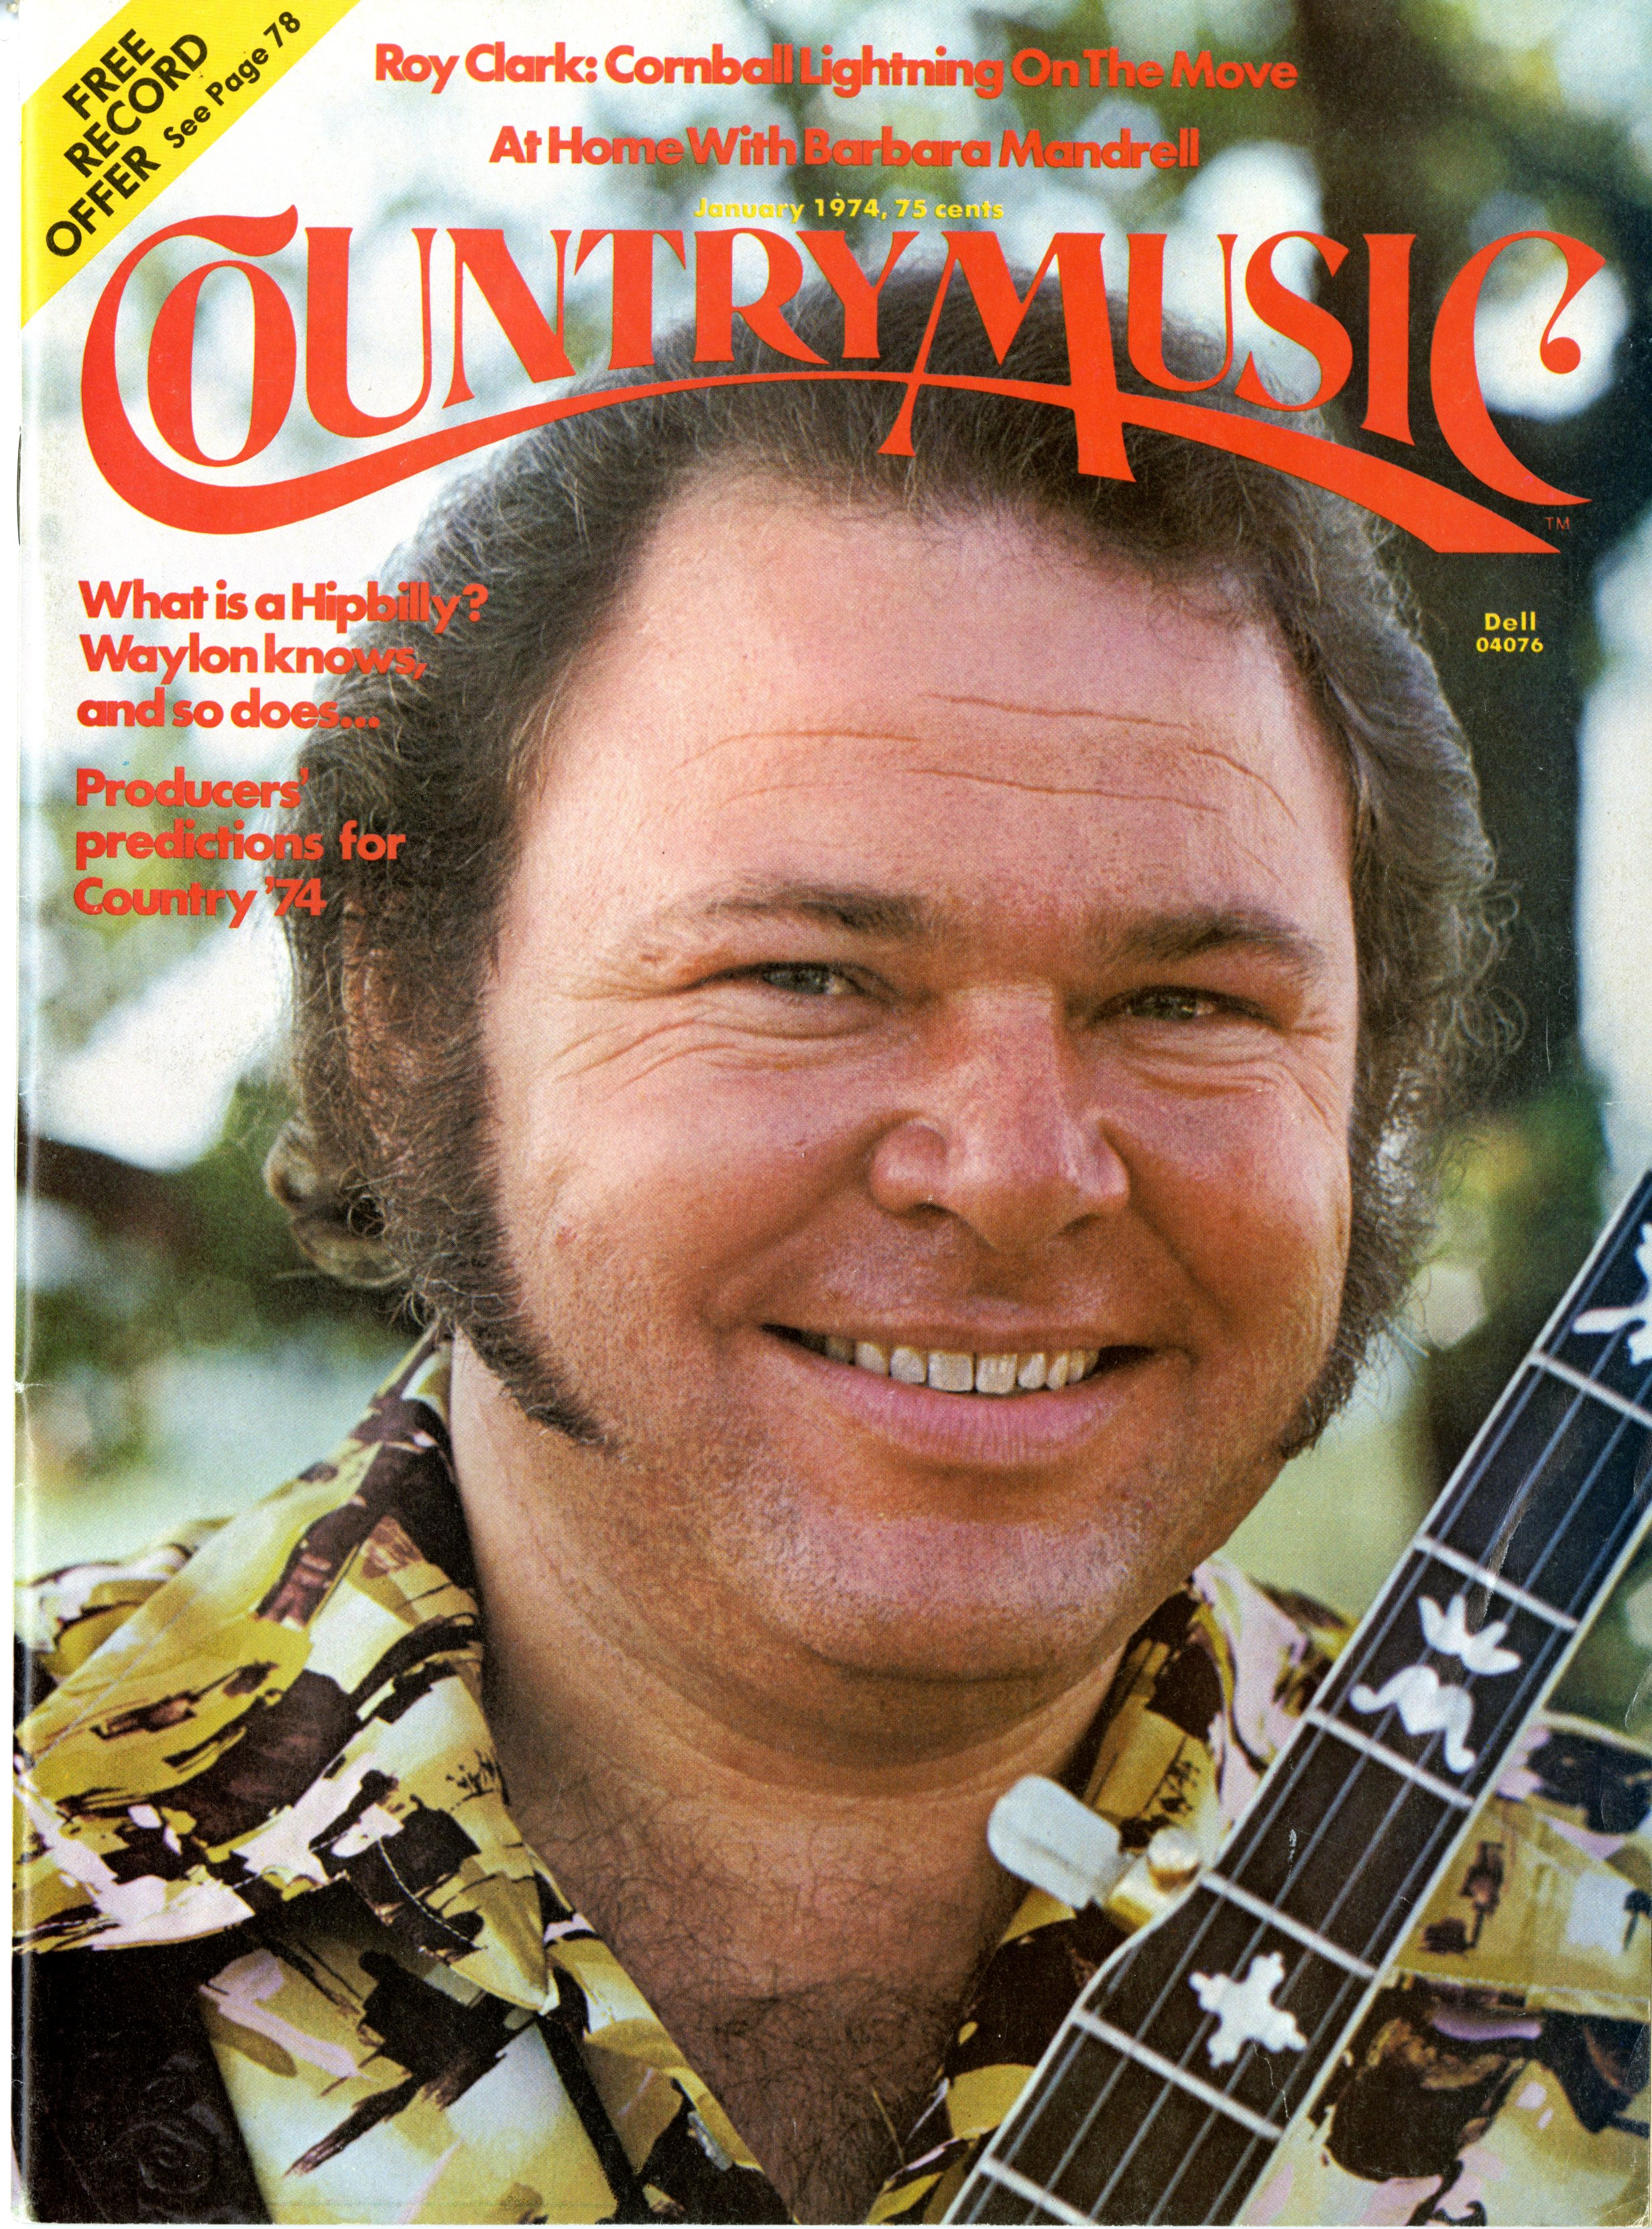 Cover_Ray Price_CountryMusic_jan1974_CountryMusic_jan1974_Russ Barnard Collection_20484_Southern Folklife Collection_UNC Chapel Hill